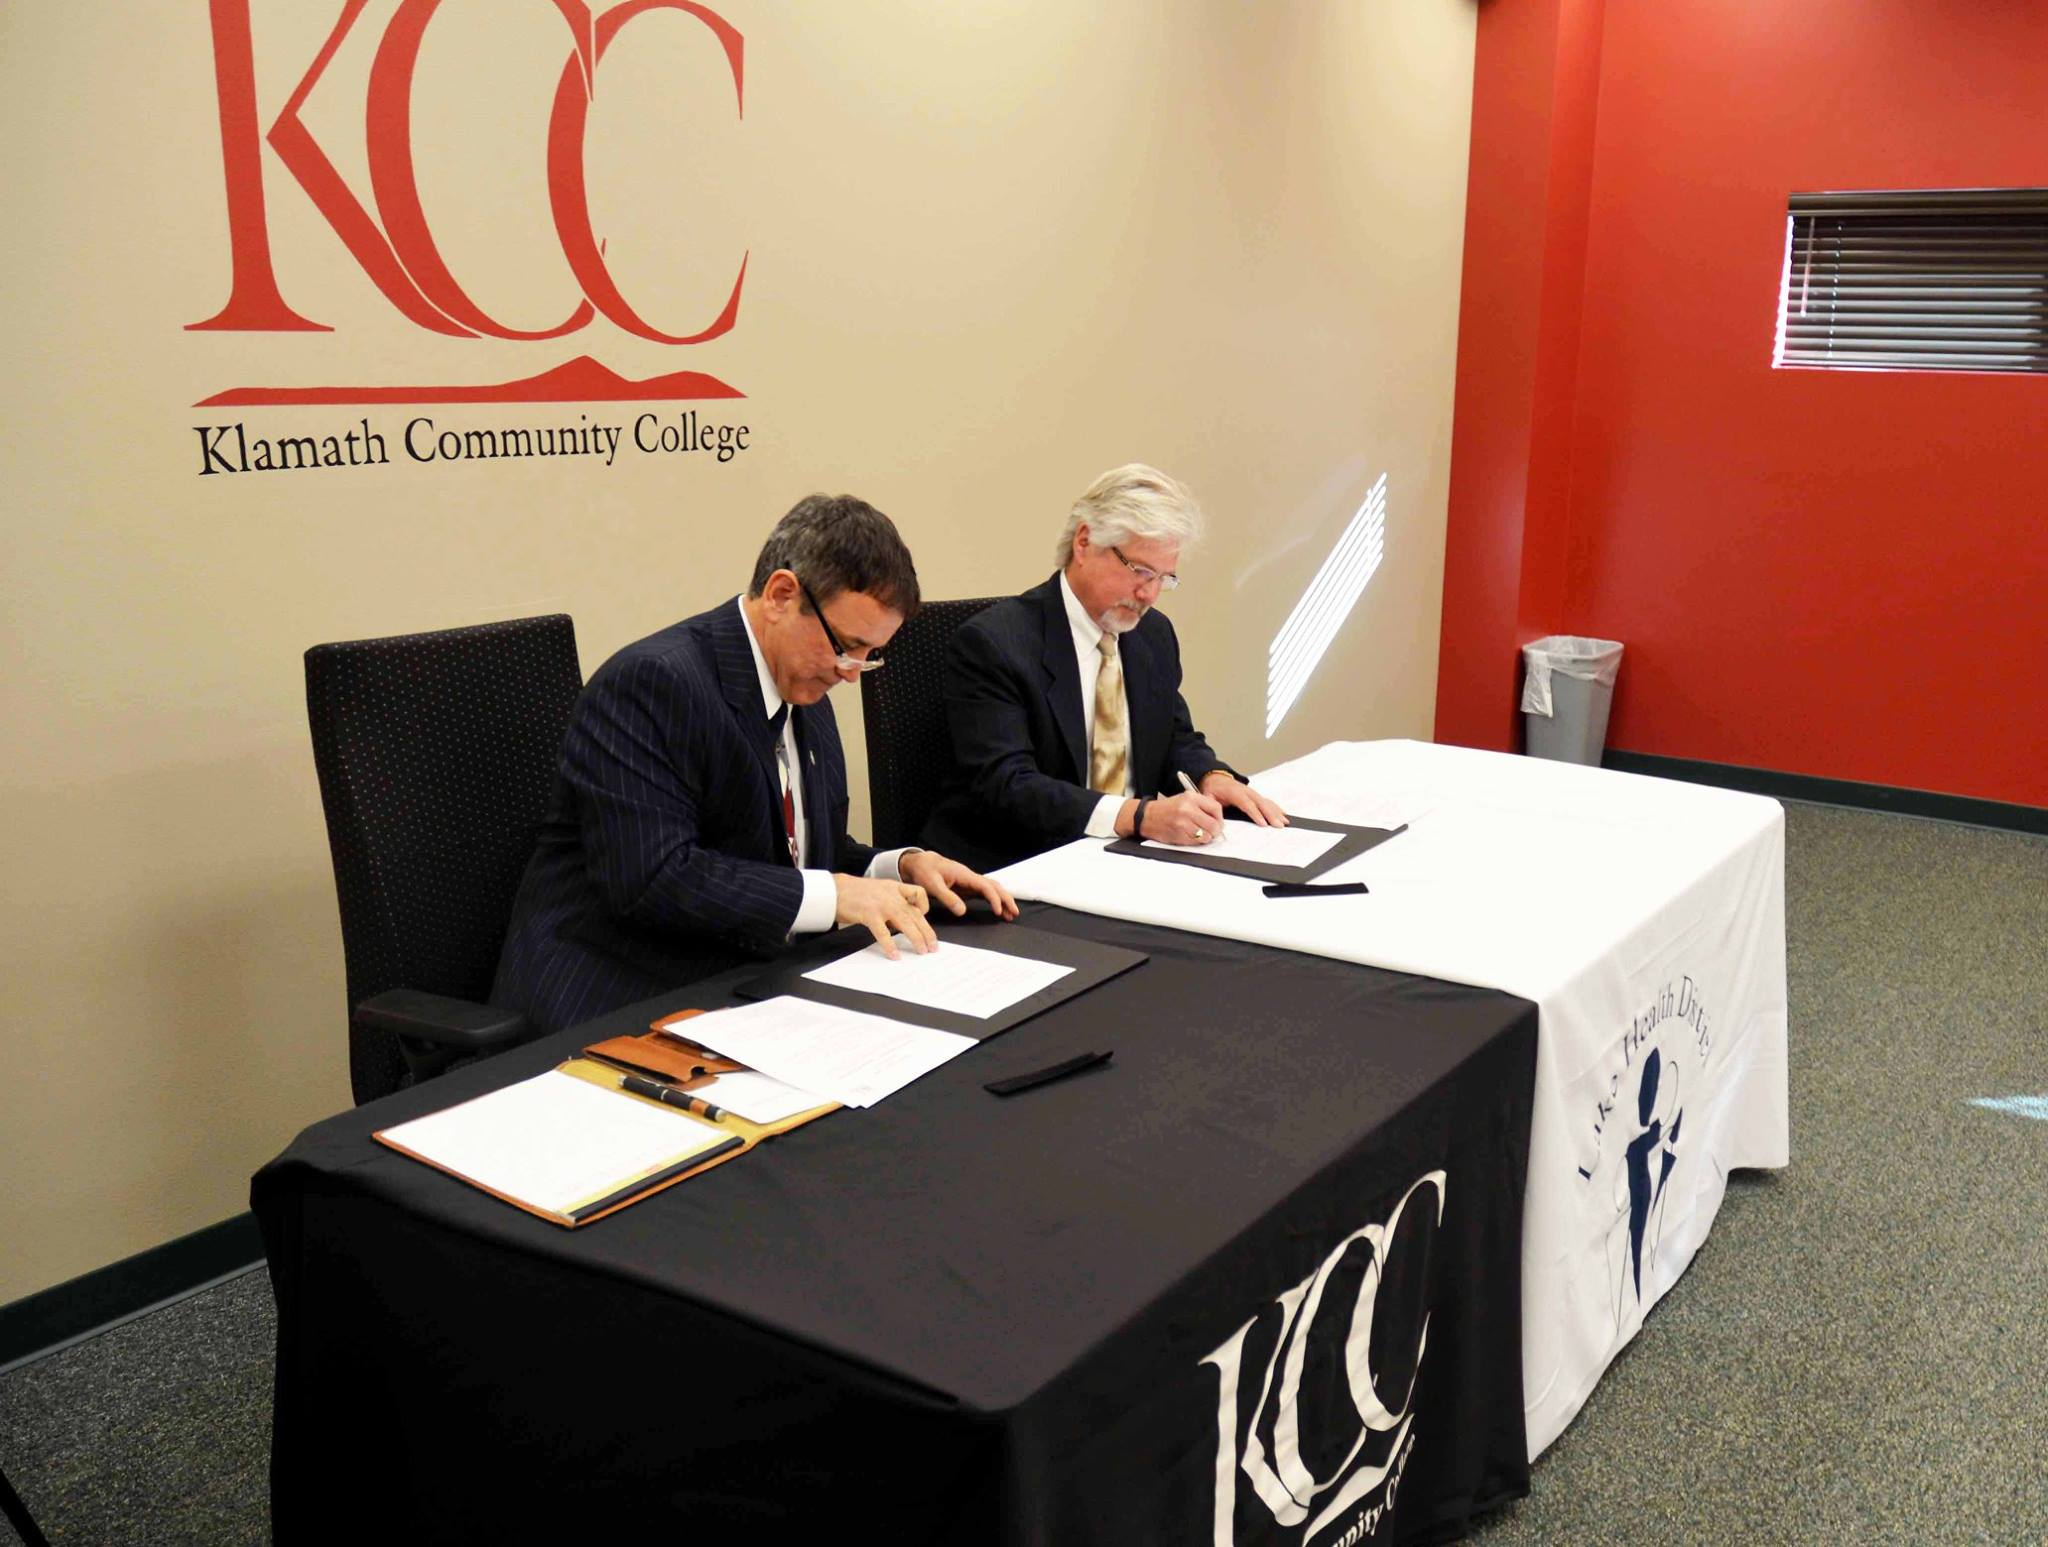 Klamath Community College President Dr. Roberto Gutierrez (left) and Lake Health District CEO Charlie Tveit sign an agreement for services in Oct. 2013. The agreement set the foundation for KCC's nursing program.